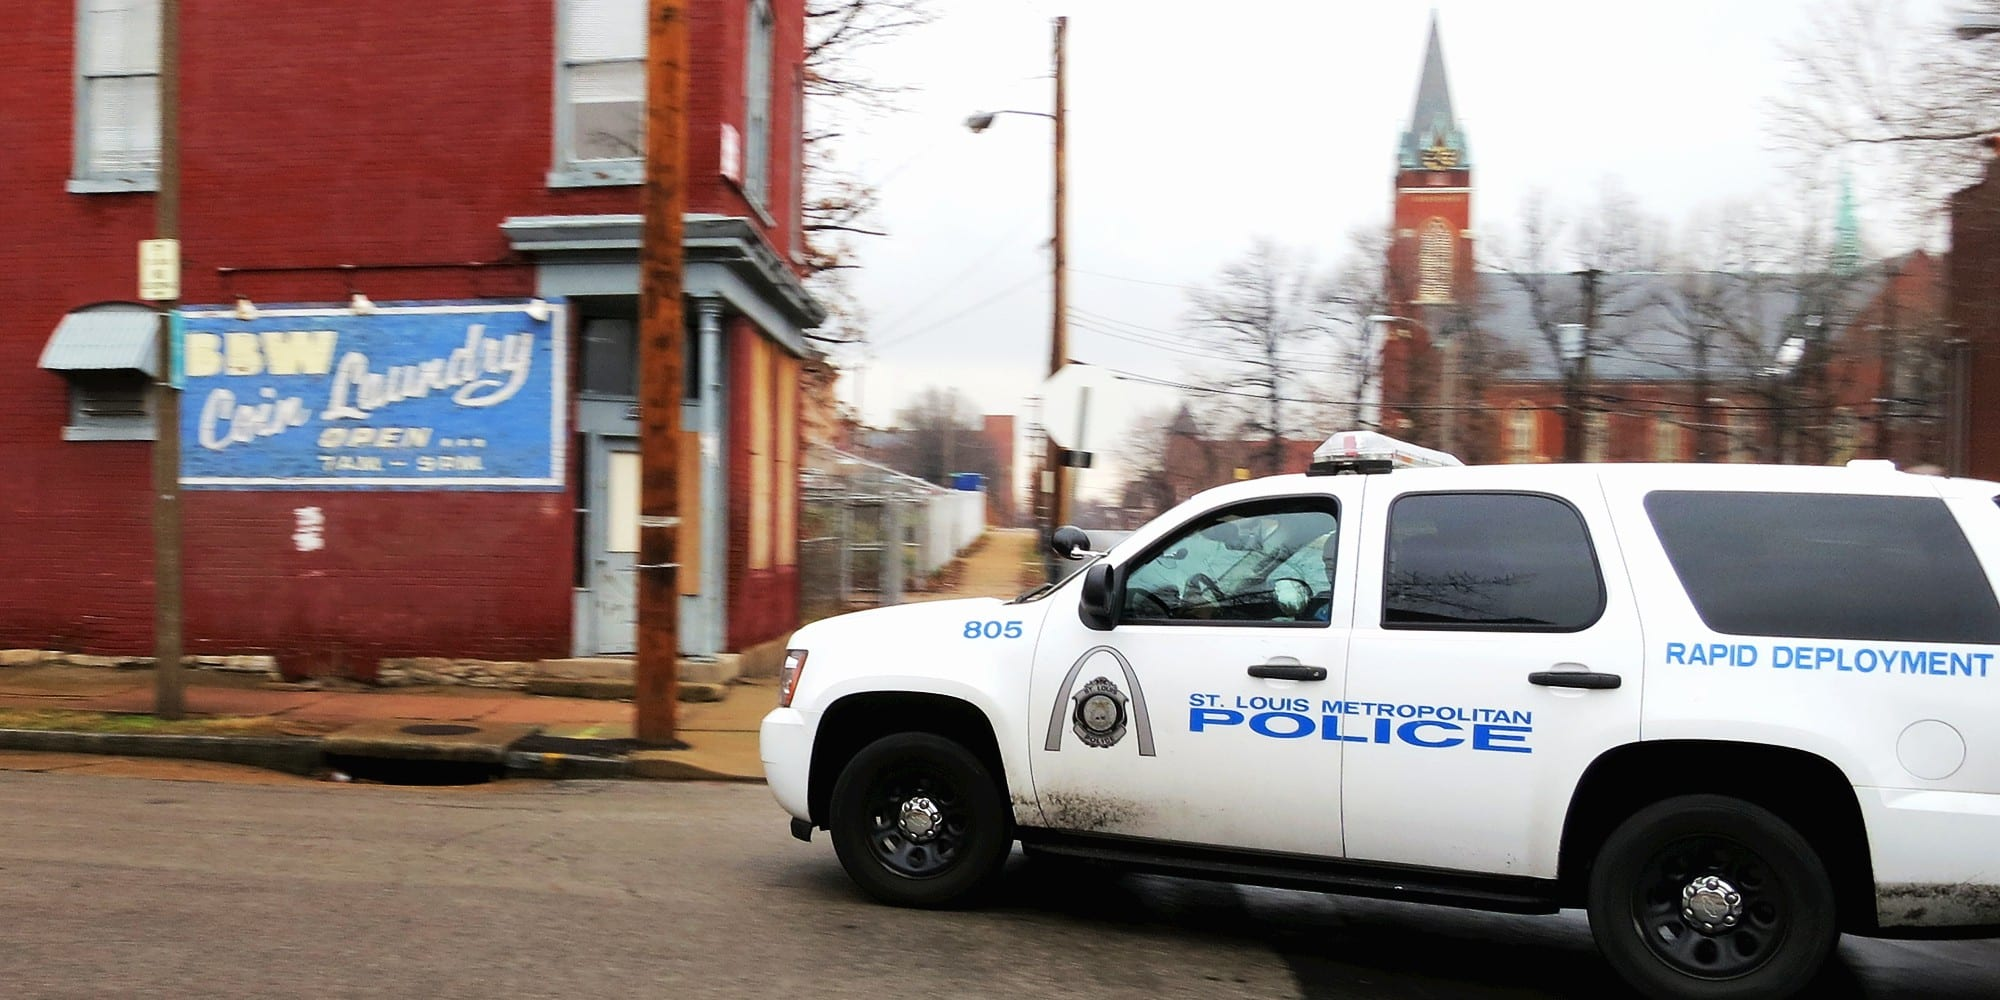 St. Louis police SUV at Iowa nad Miami. Photo by Paul Sableman.